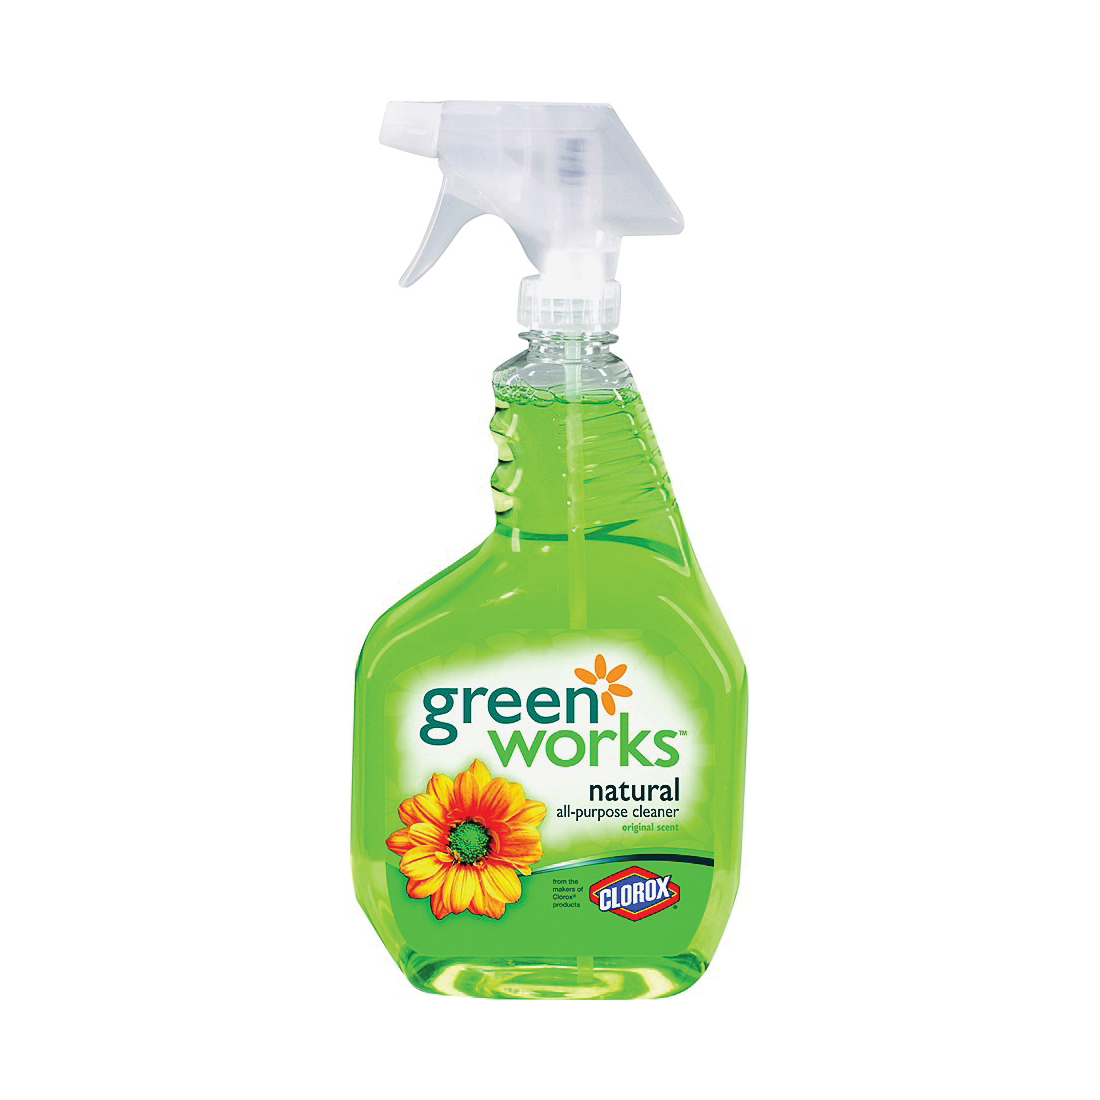 Picture of Clorox 00450 All-Purpose Cleaner, 32 oz Package, Spray Bottle, Liquid, Lemon, Natural